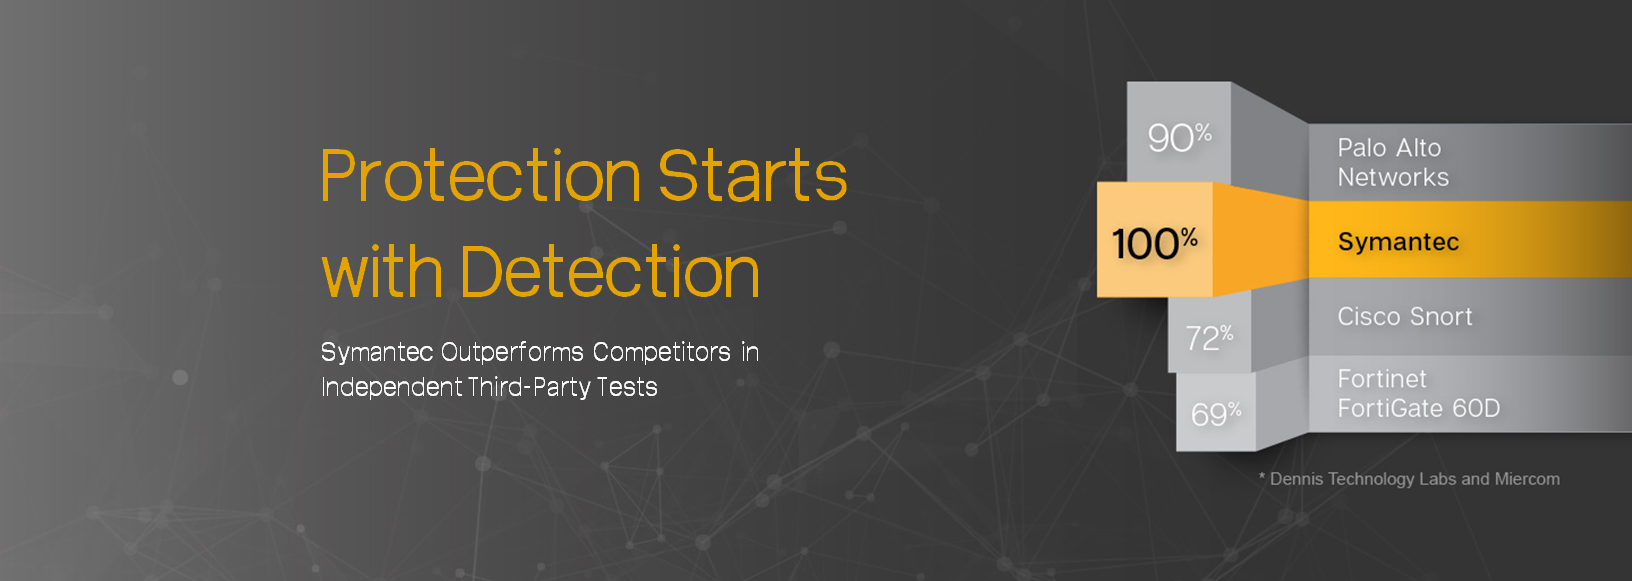 Protection Starts with Detection